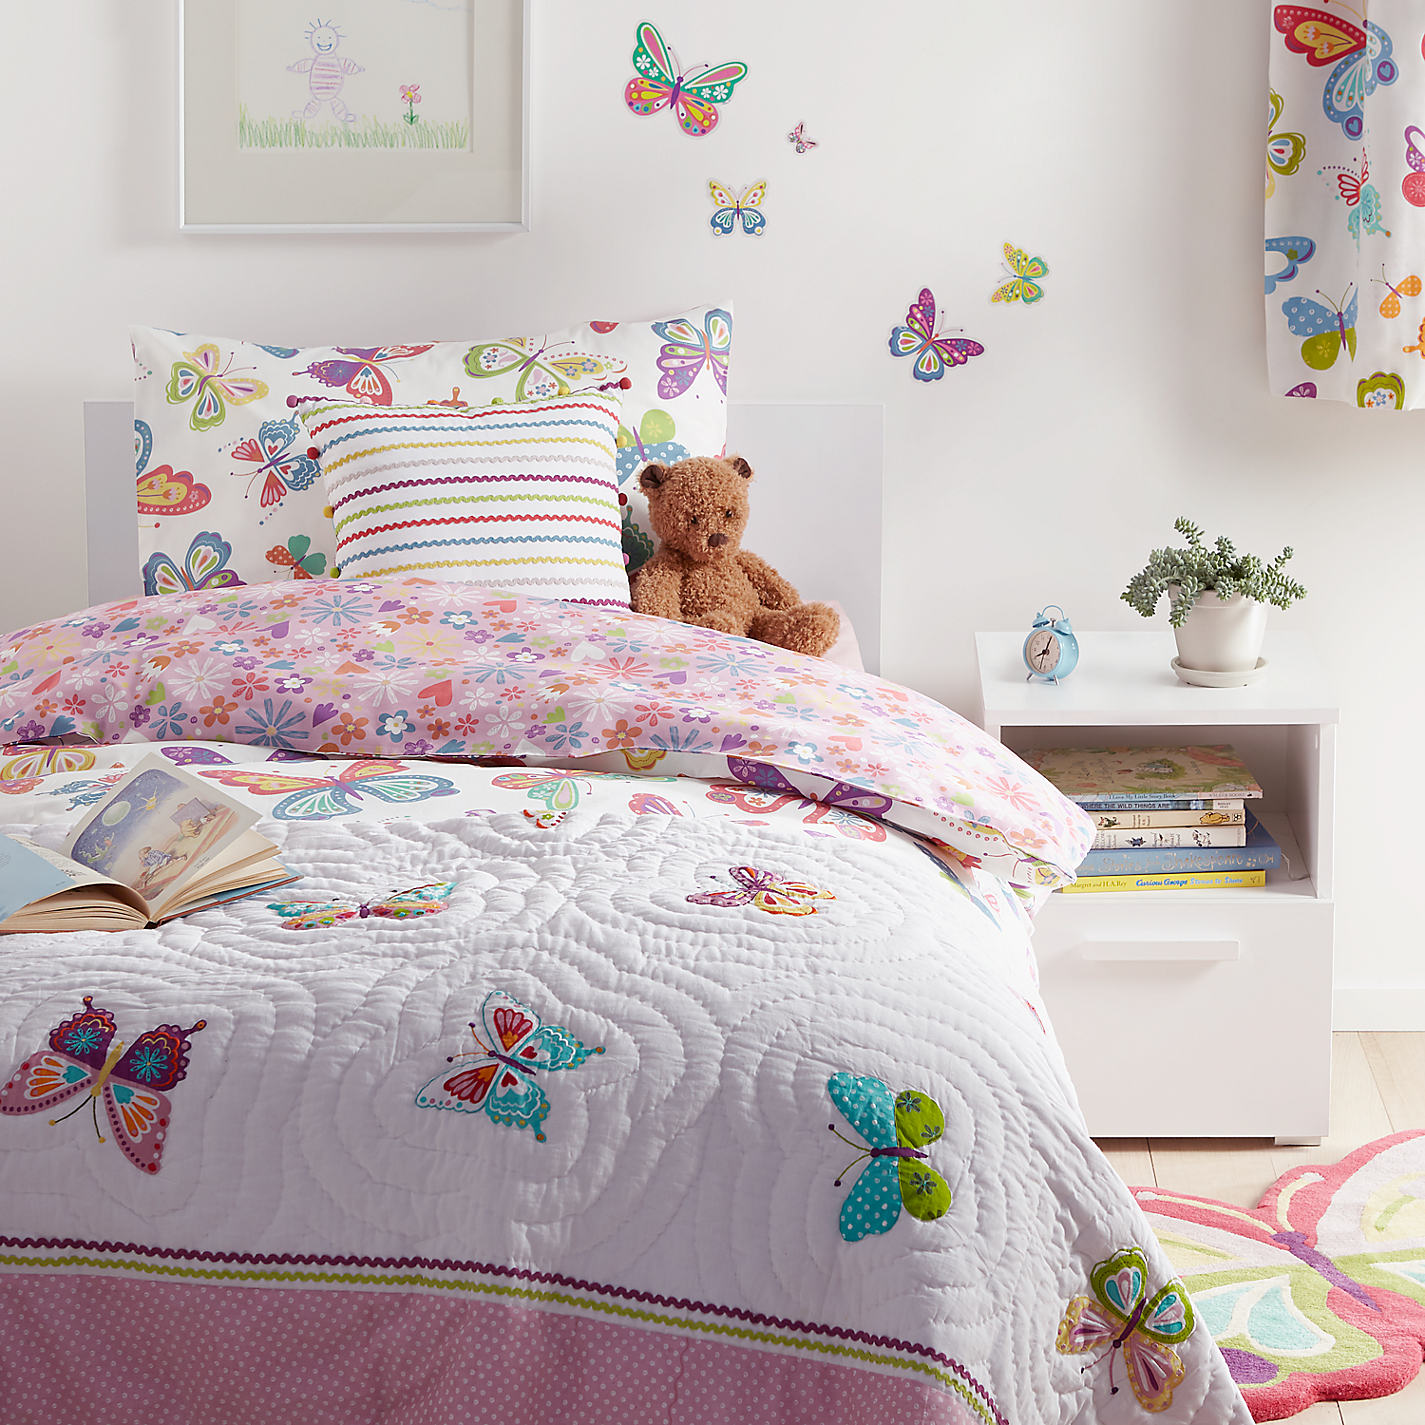 John lewis childrens bedroom furniture - Buy Little Home At John Lewis Butterflies Duvet Cover And Pillowcase Set Single Online At